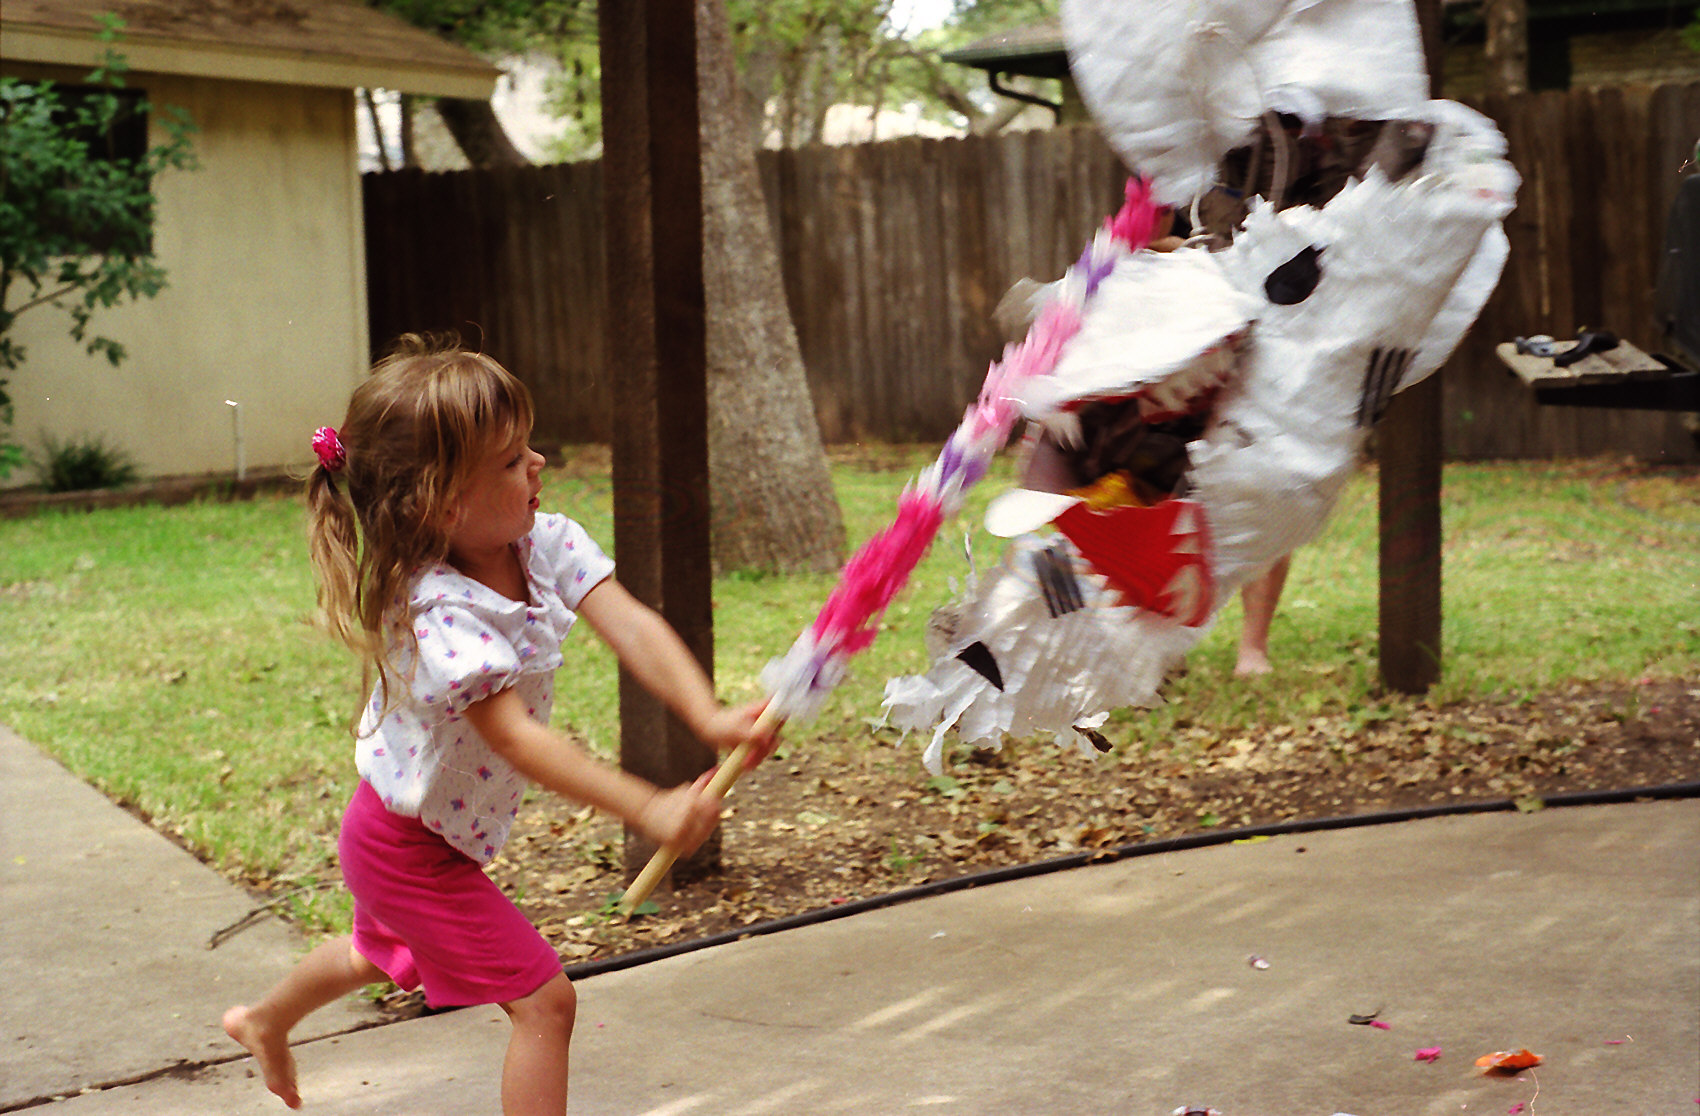 Smashing Your Piñata Piñata Boy